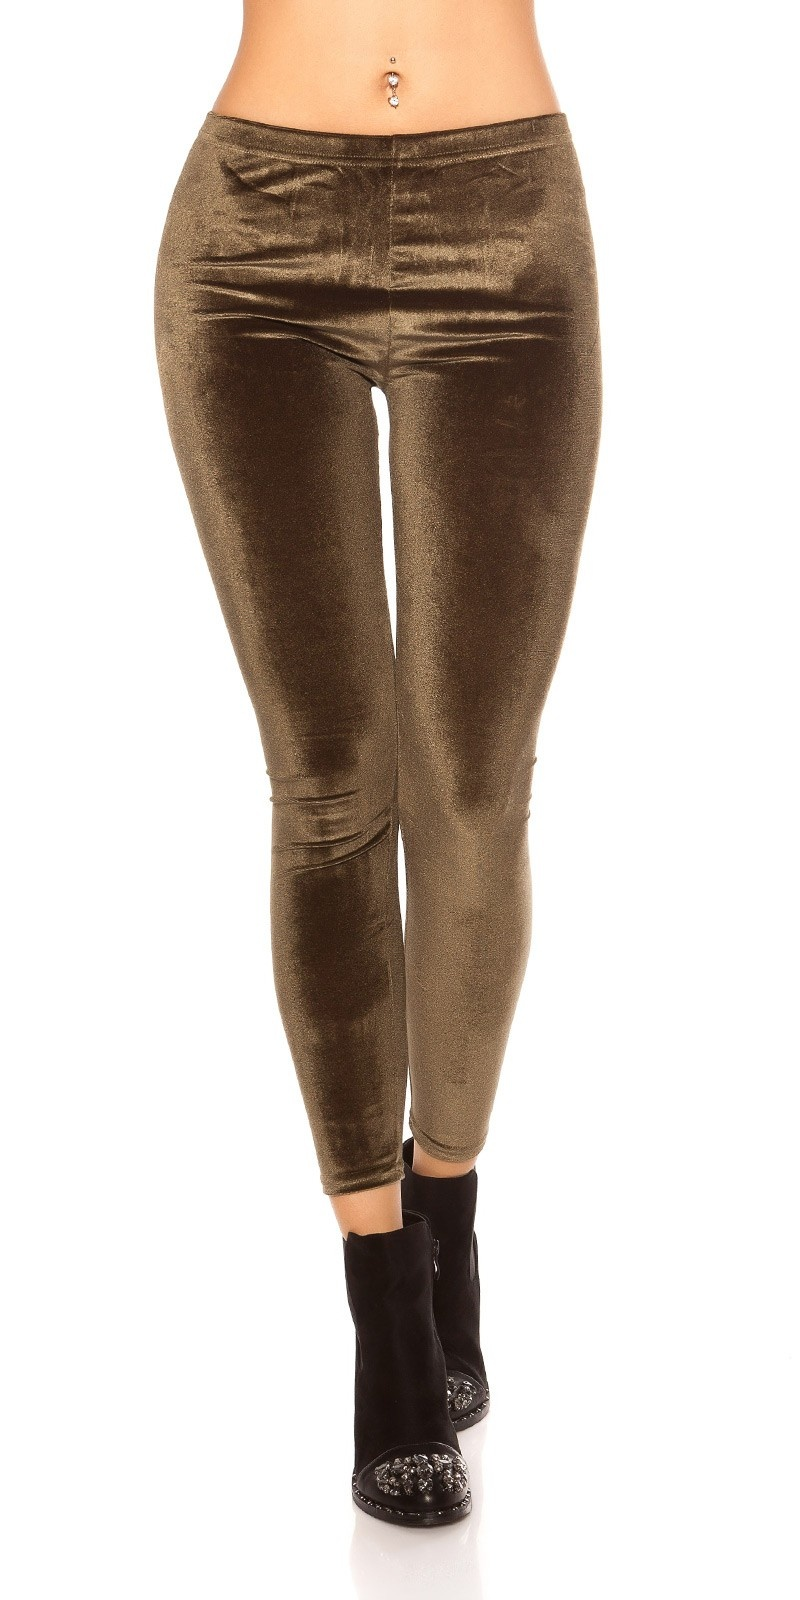 Trendy nicki leggins Khaki